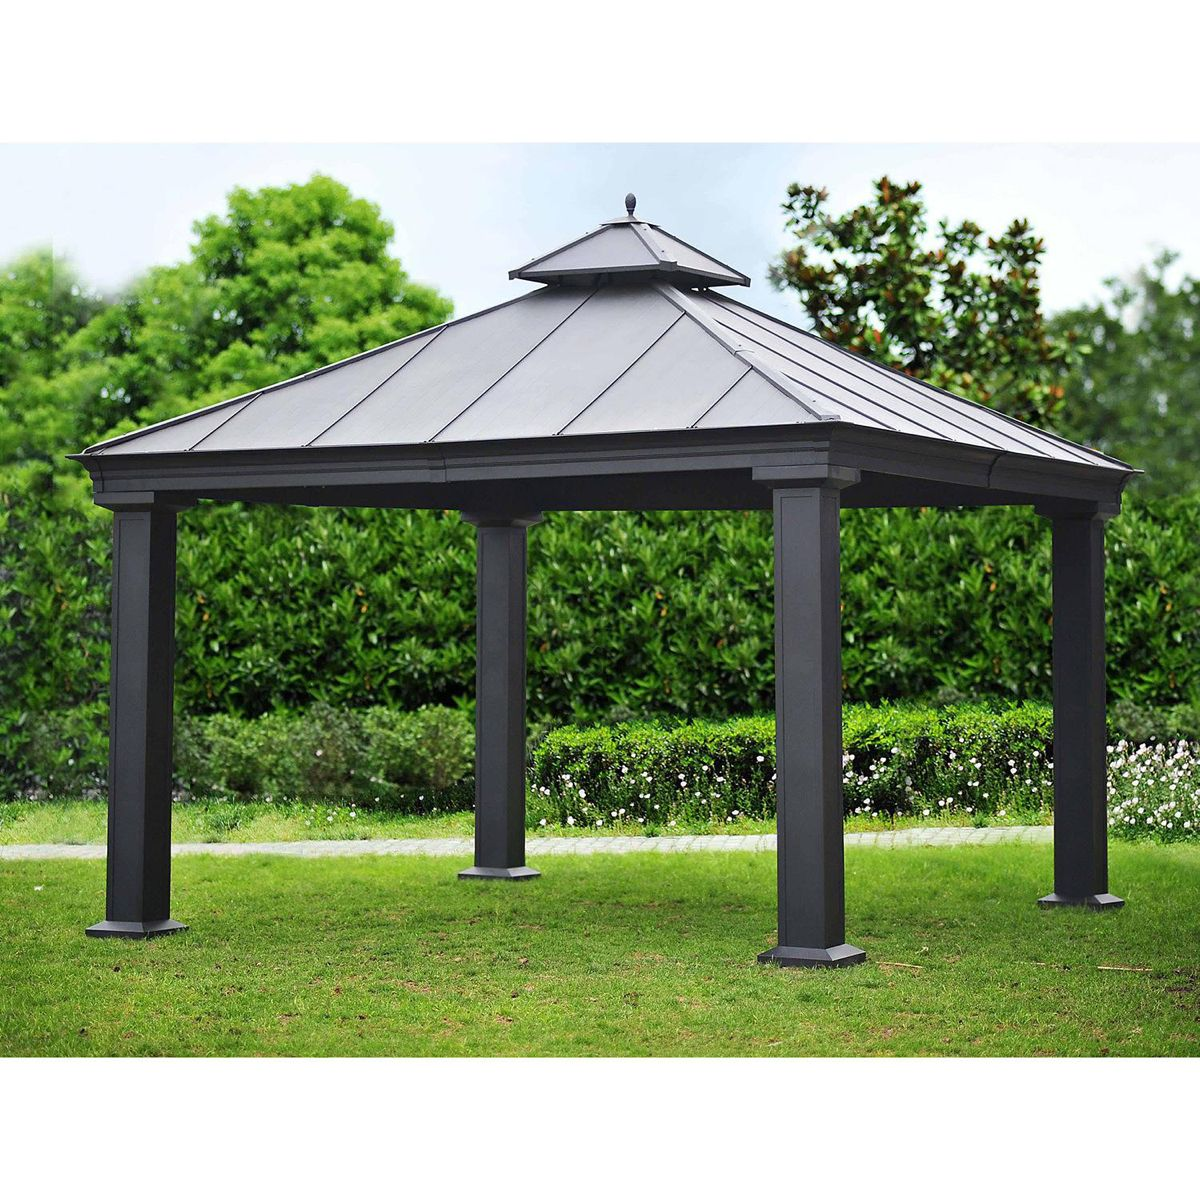 Royal Hardtop Gazebo 12 X 12 Sam S Club Hardtop Gazebo Gazebo Backyard Pergola